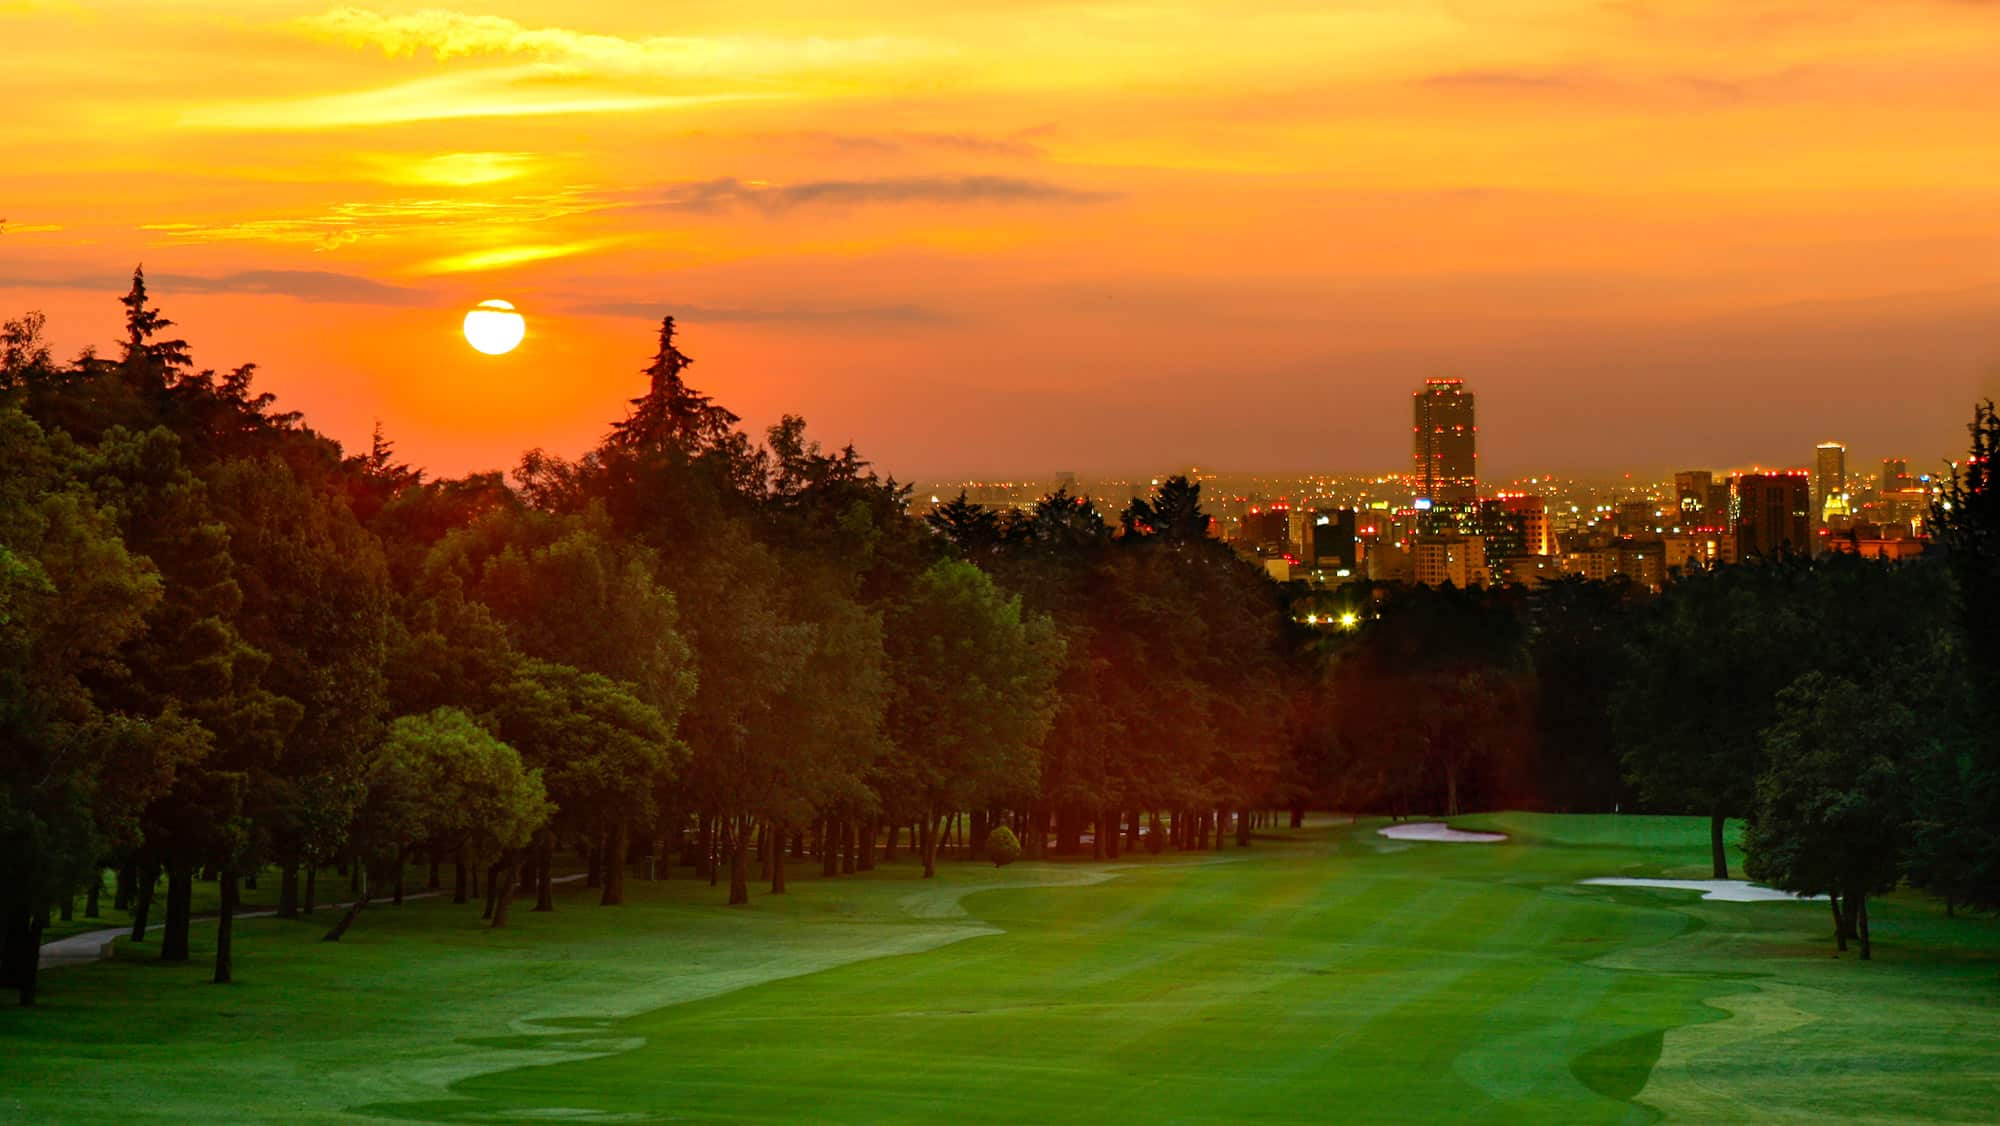 Wgc cadillac golf betting systems what does betting odds mean